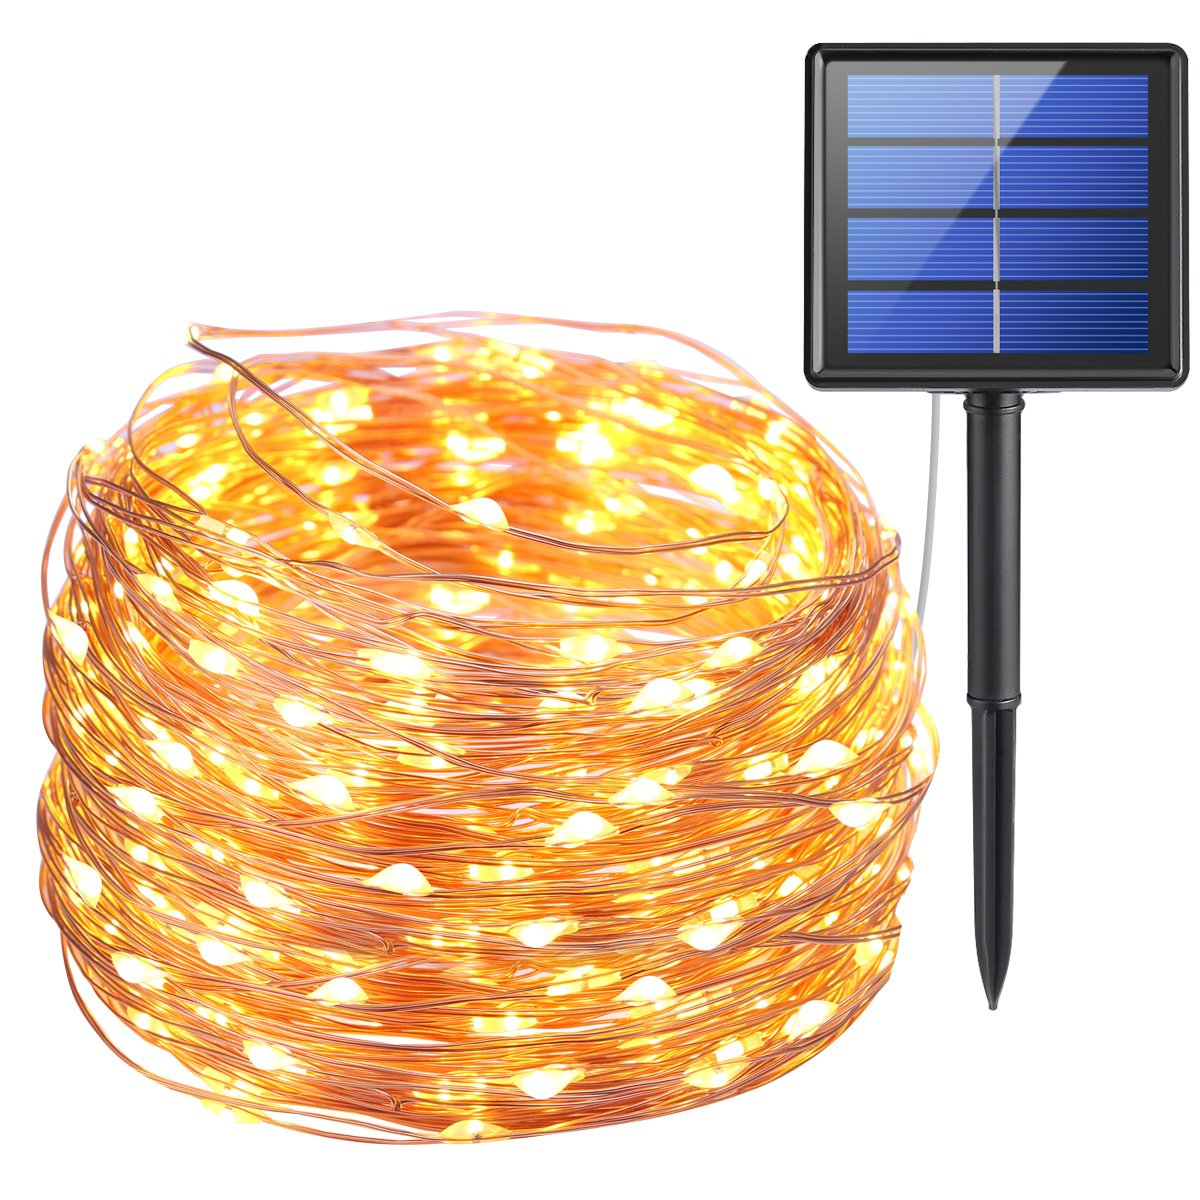 AMIR Solar Powered String Lights, 200 LED Copper Wire Lights, 72ft 8 Modes Starry Lights, Waterproof IP65 Fairy Christams Decorative Lights for Outdoor, Wedding, Homes, Party, Halloween (Warm White) by AMIR